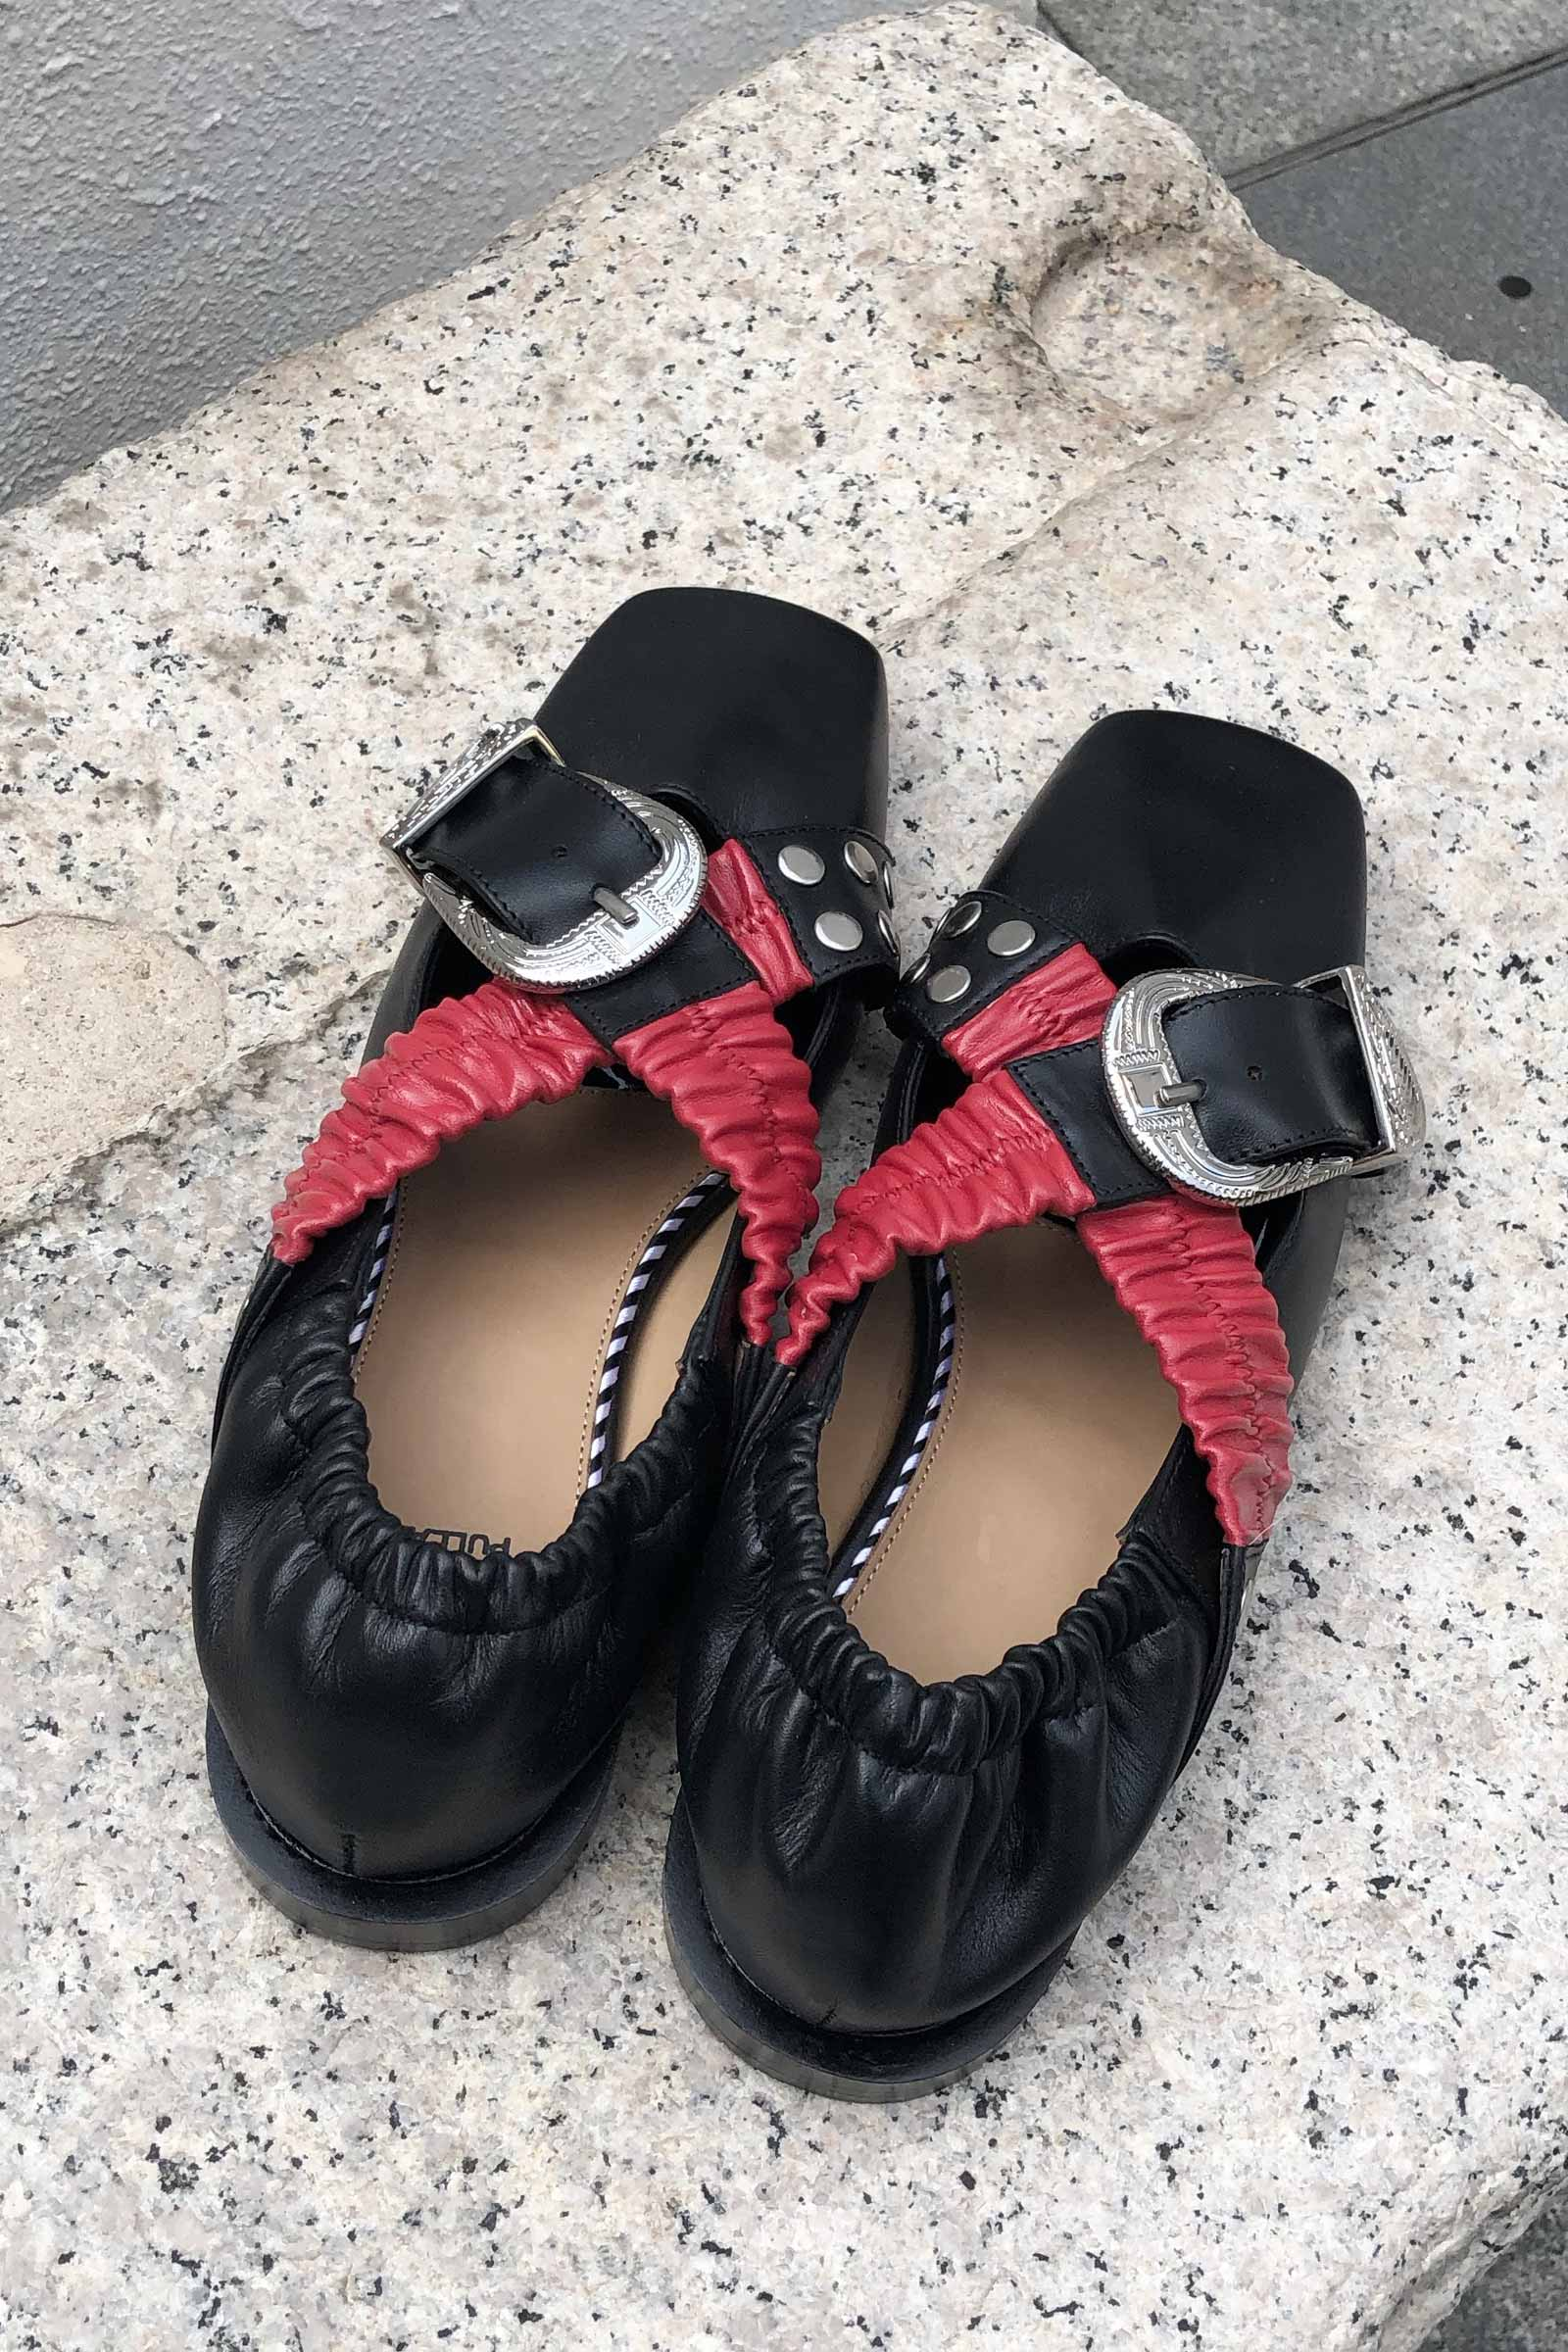 AJ928 – Buckled Square-toe Leather Ballerinas